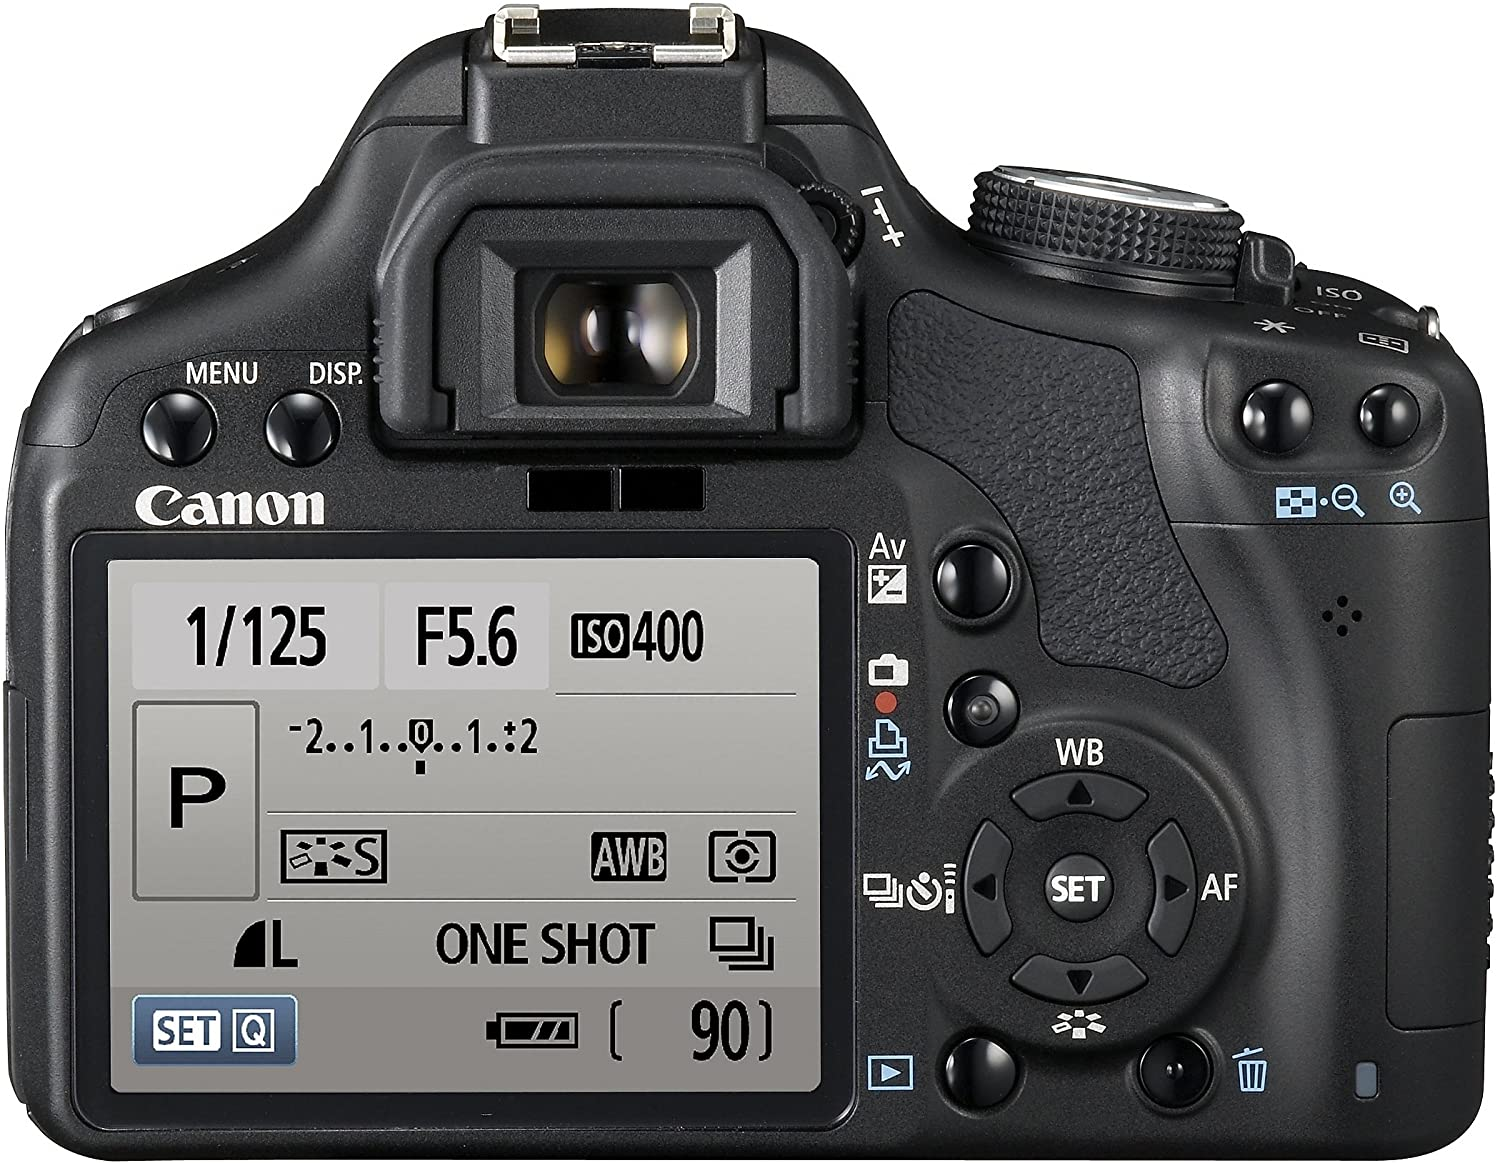 UHS-I3.080MBs MIXZA Performance Grade 32GB Verified for Canon EOS Rebel T1i MicroSDHC Card is Pro-Speed Heat /& Cold Resistant and Built for Lifetime of Constant Use!